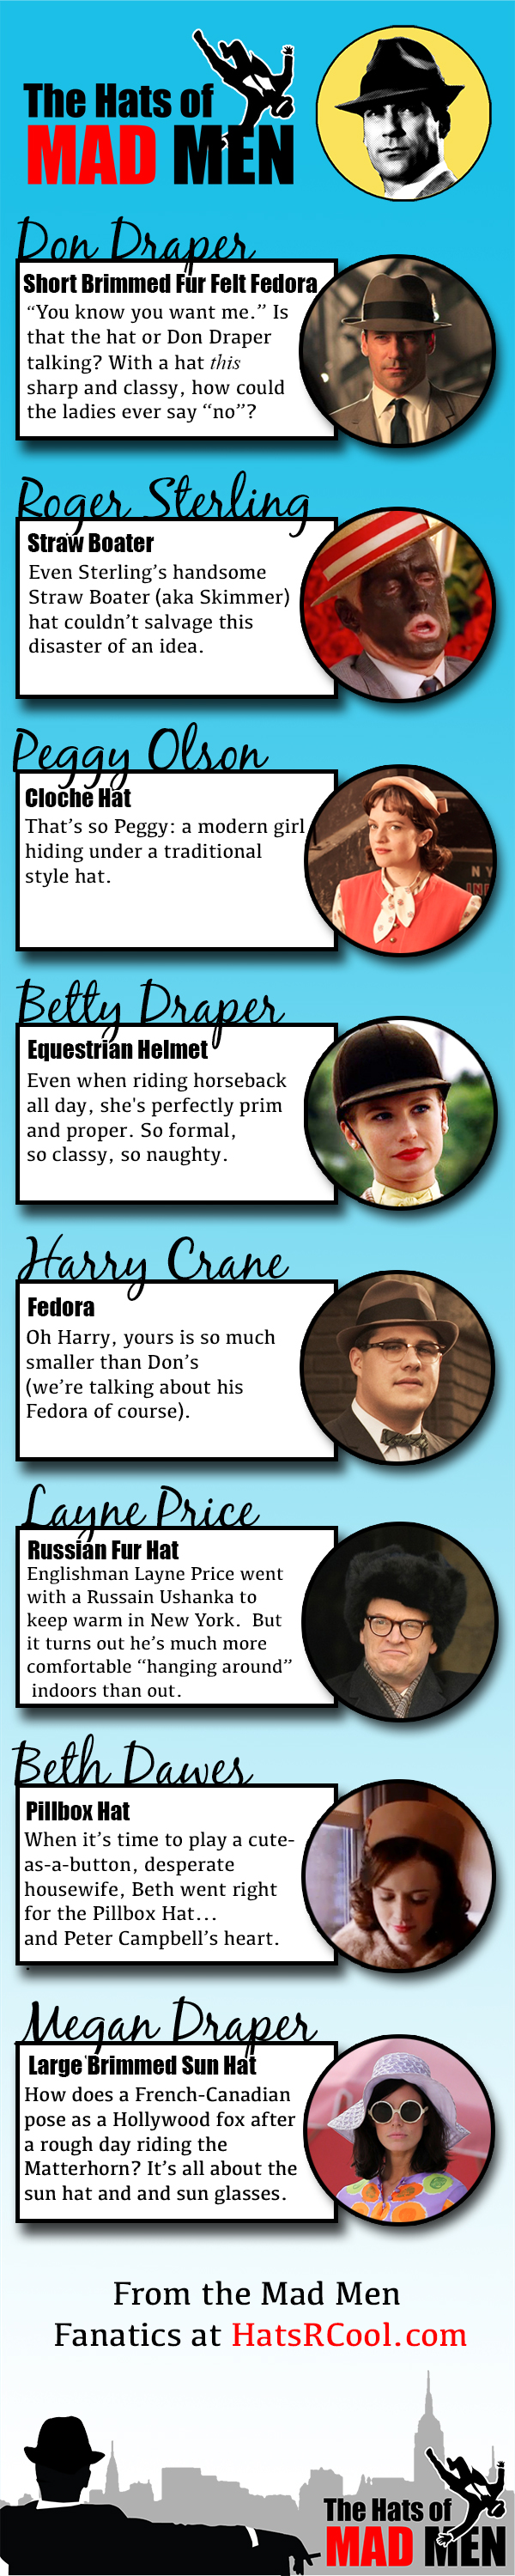 The Hats of Mad Men